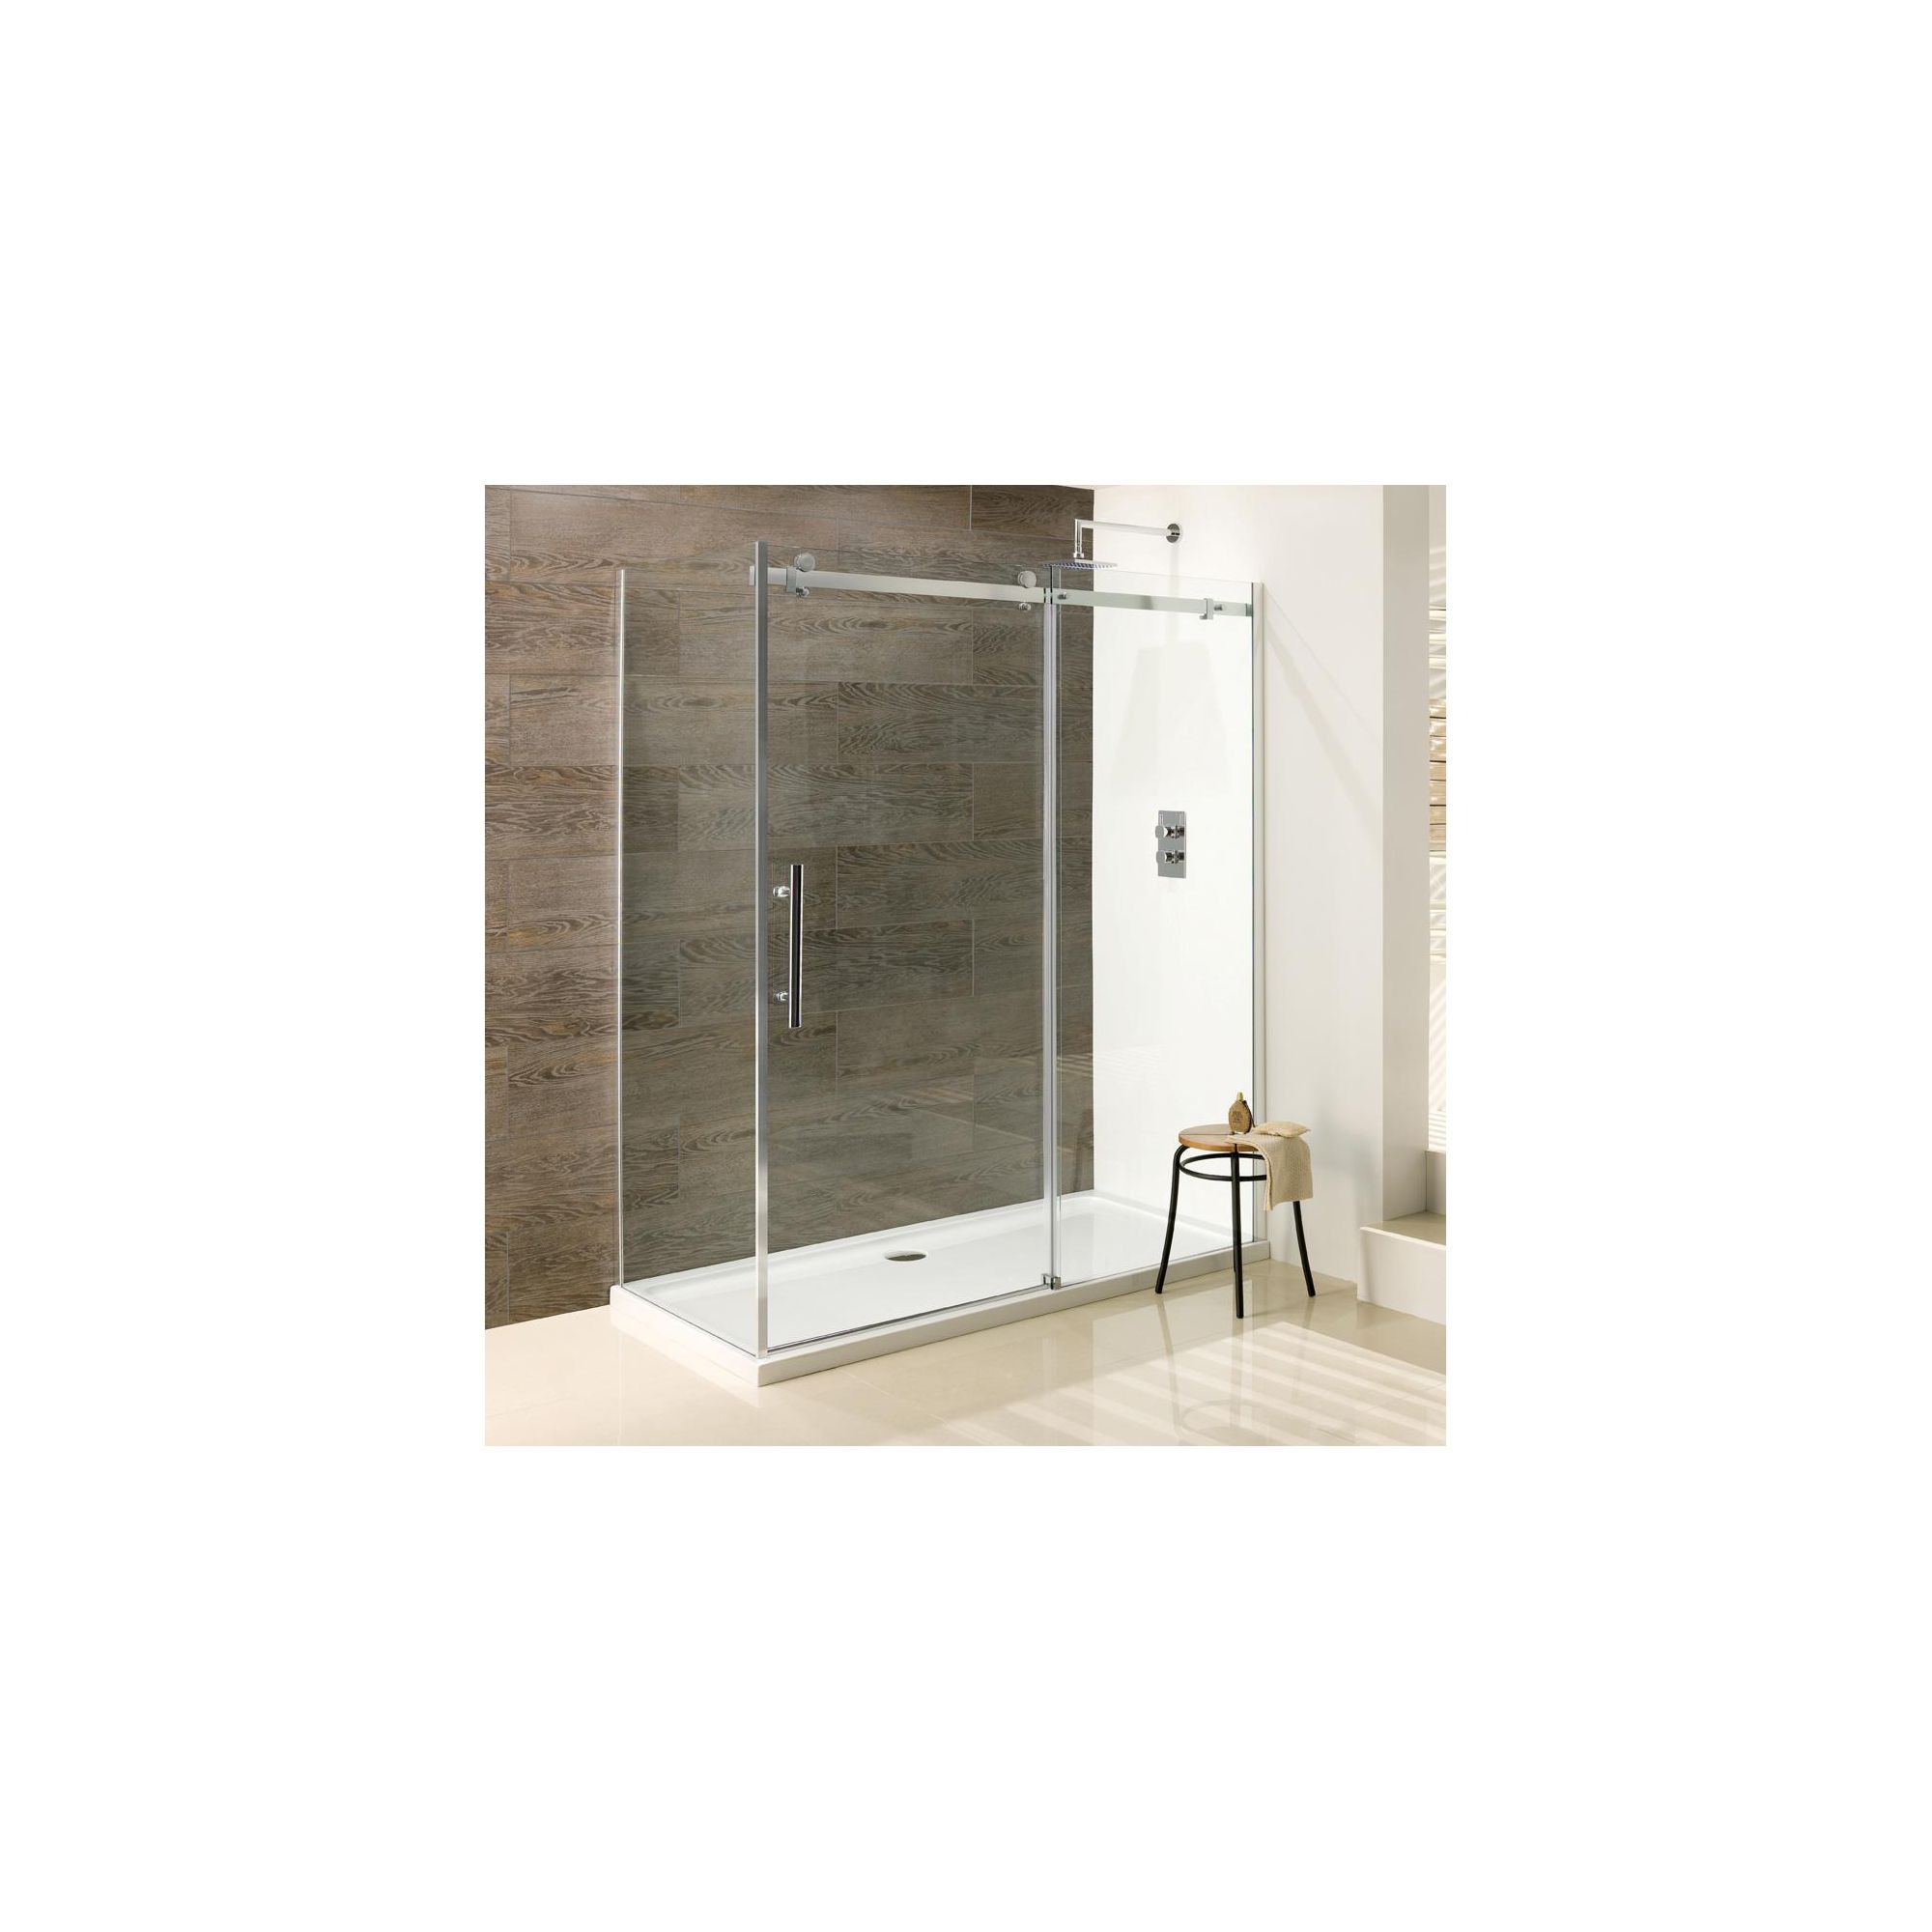 Duchy Deluxe Silver Sliding Door Shower Enclosure with Side Panel 1000mm x 760mm (Complete with Tray), 10mm Glass at Tescos Direct